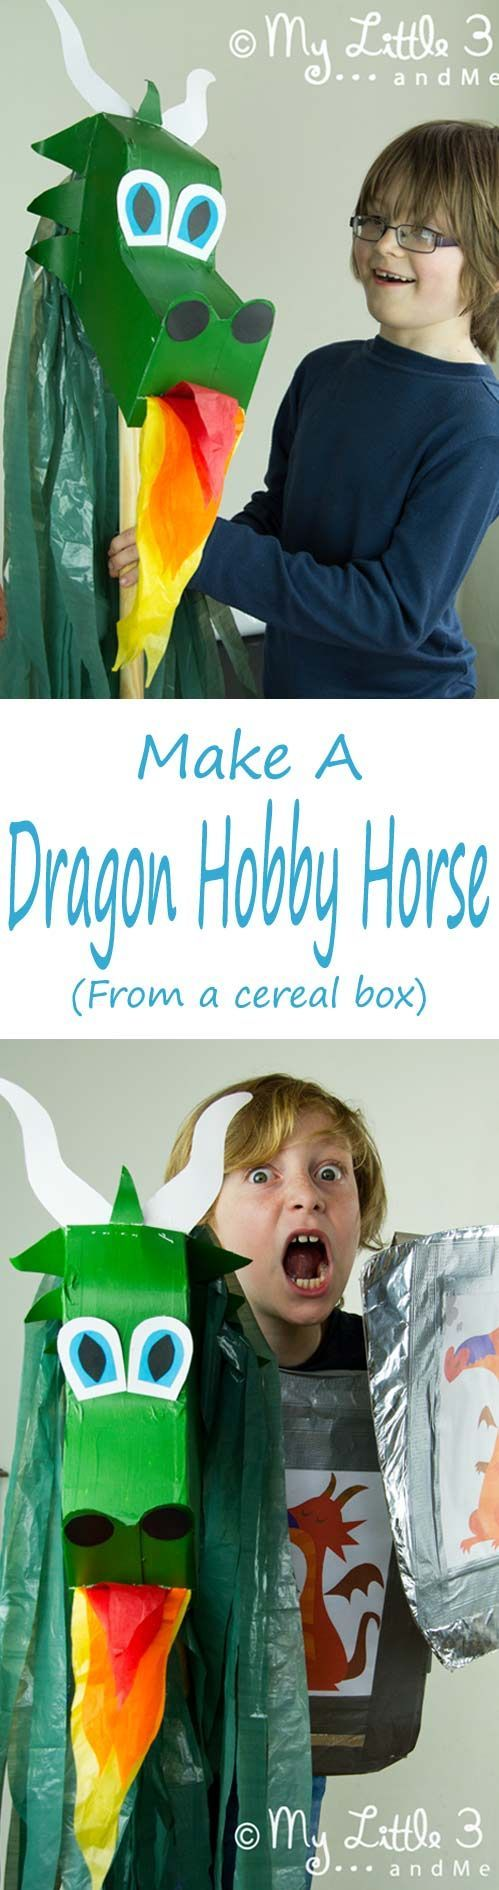 DRAGON HOBBY HORSE Imagine how excited kids will be to ride on the back of their own dragon! This dragon is easily made from an up-cycled cereal box for hours of imaginative play. #dragon #dragoncraft #kidscrafts #recycledcrafts  #hobbyhorse #homemadedragon #diydragon #dramaticplay #imaginativeplay #play #playideas #craftsforkids #kidsactivities #stgeorge #saintgeorge #stgeorgesday